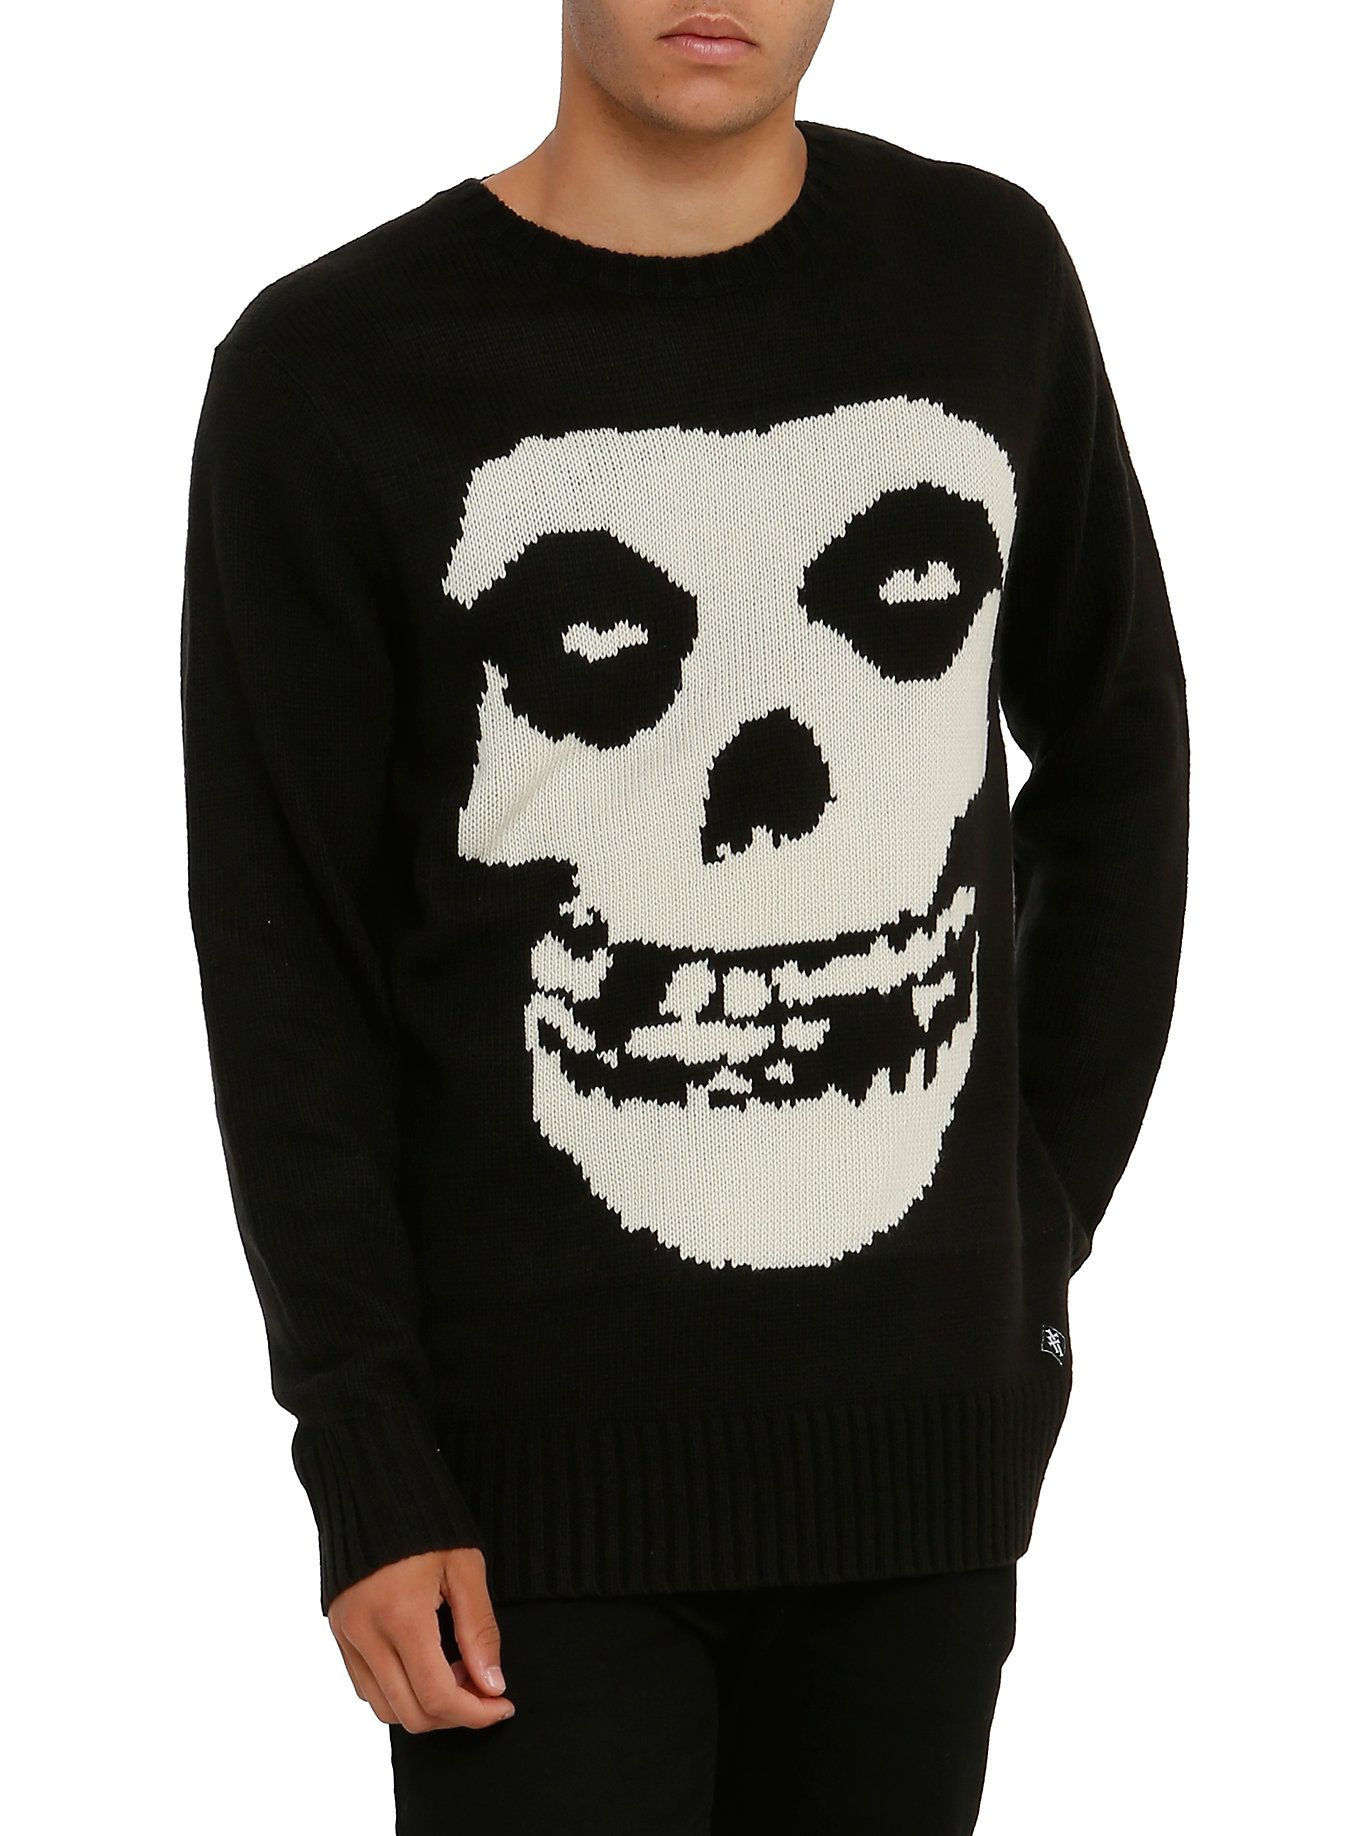 Iron Fist Misfits Fiend Skull Sweater | Hot Topic | Clothes ...